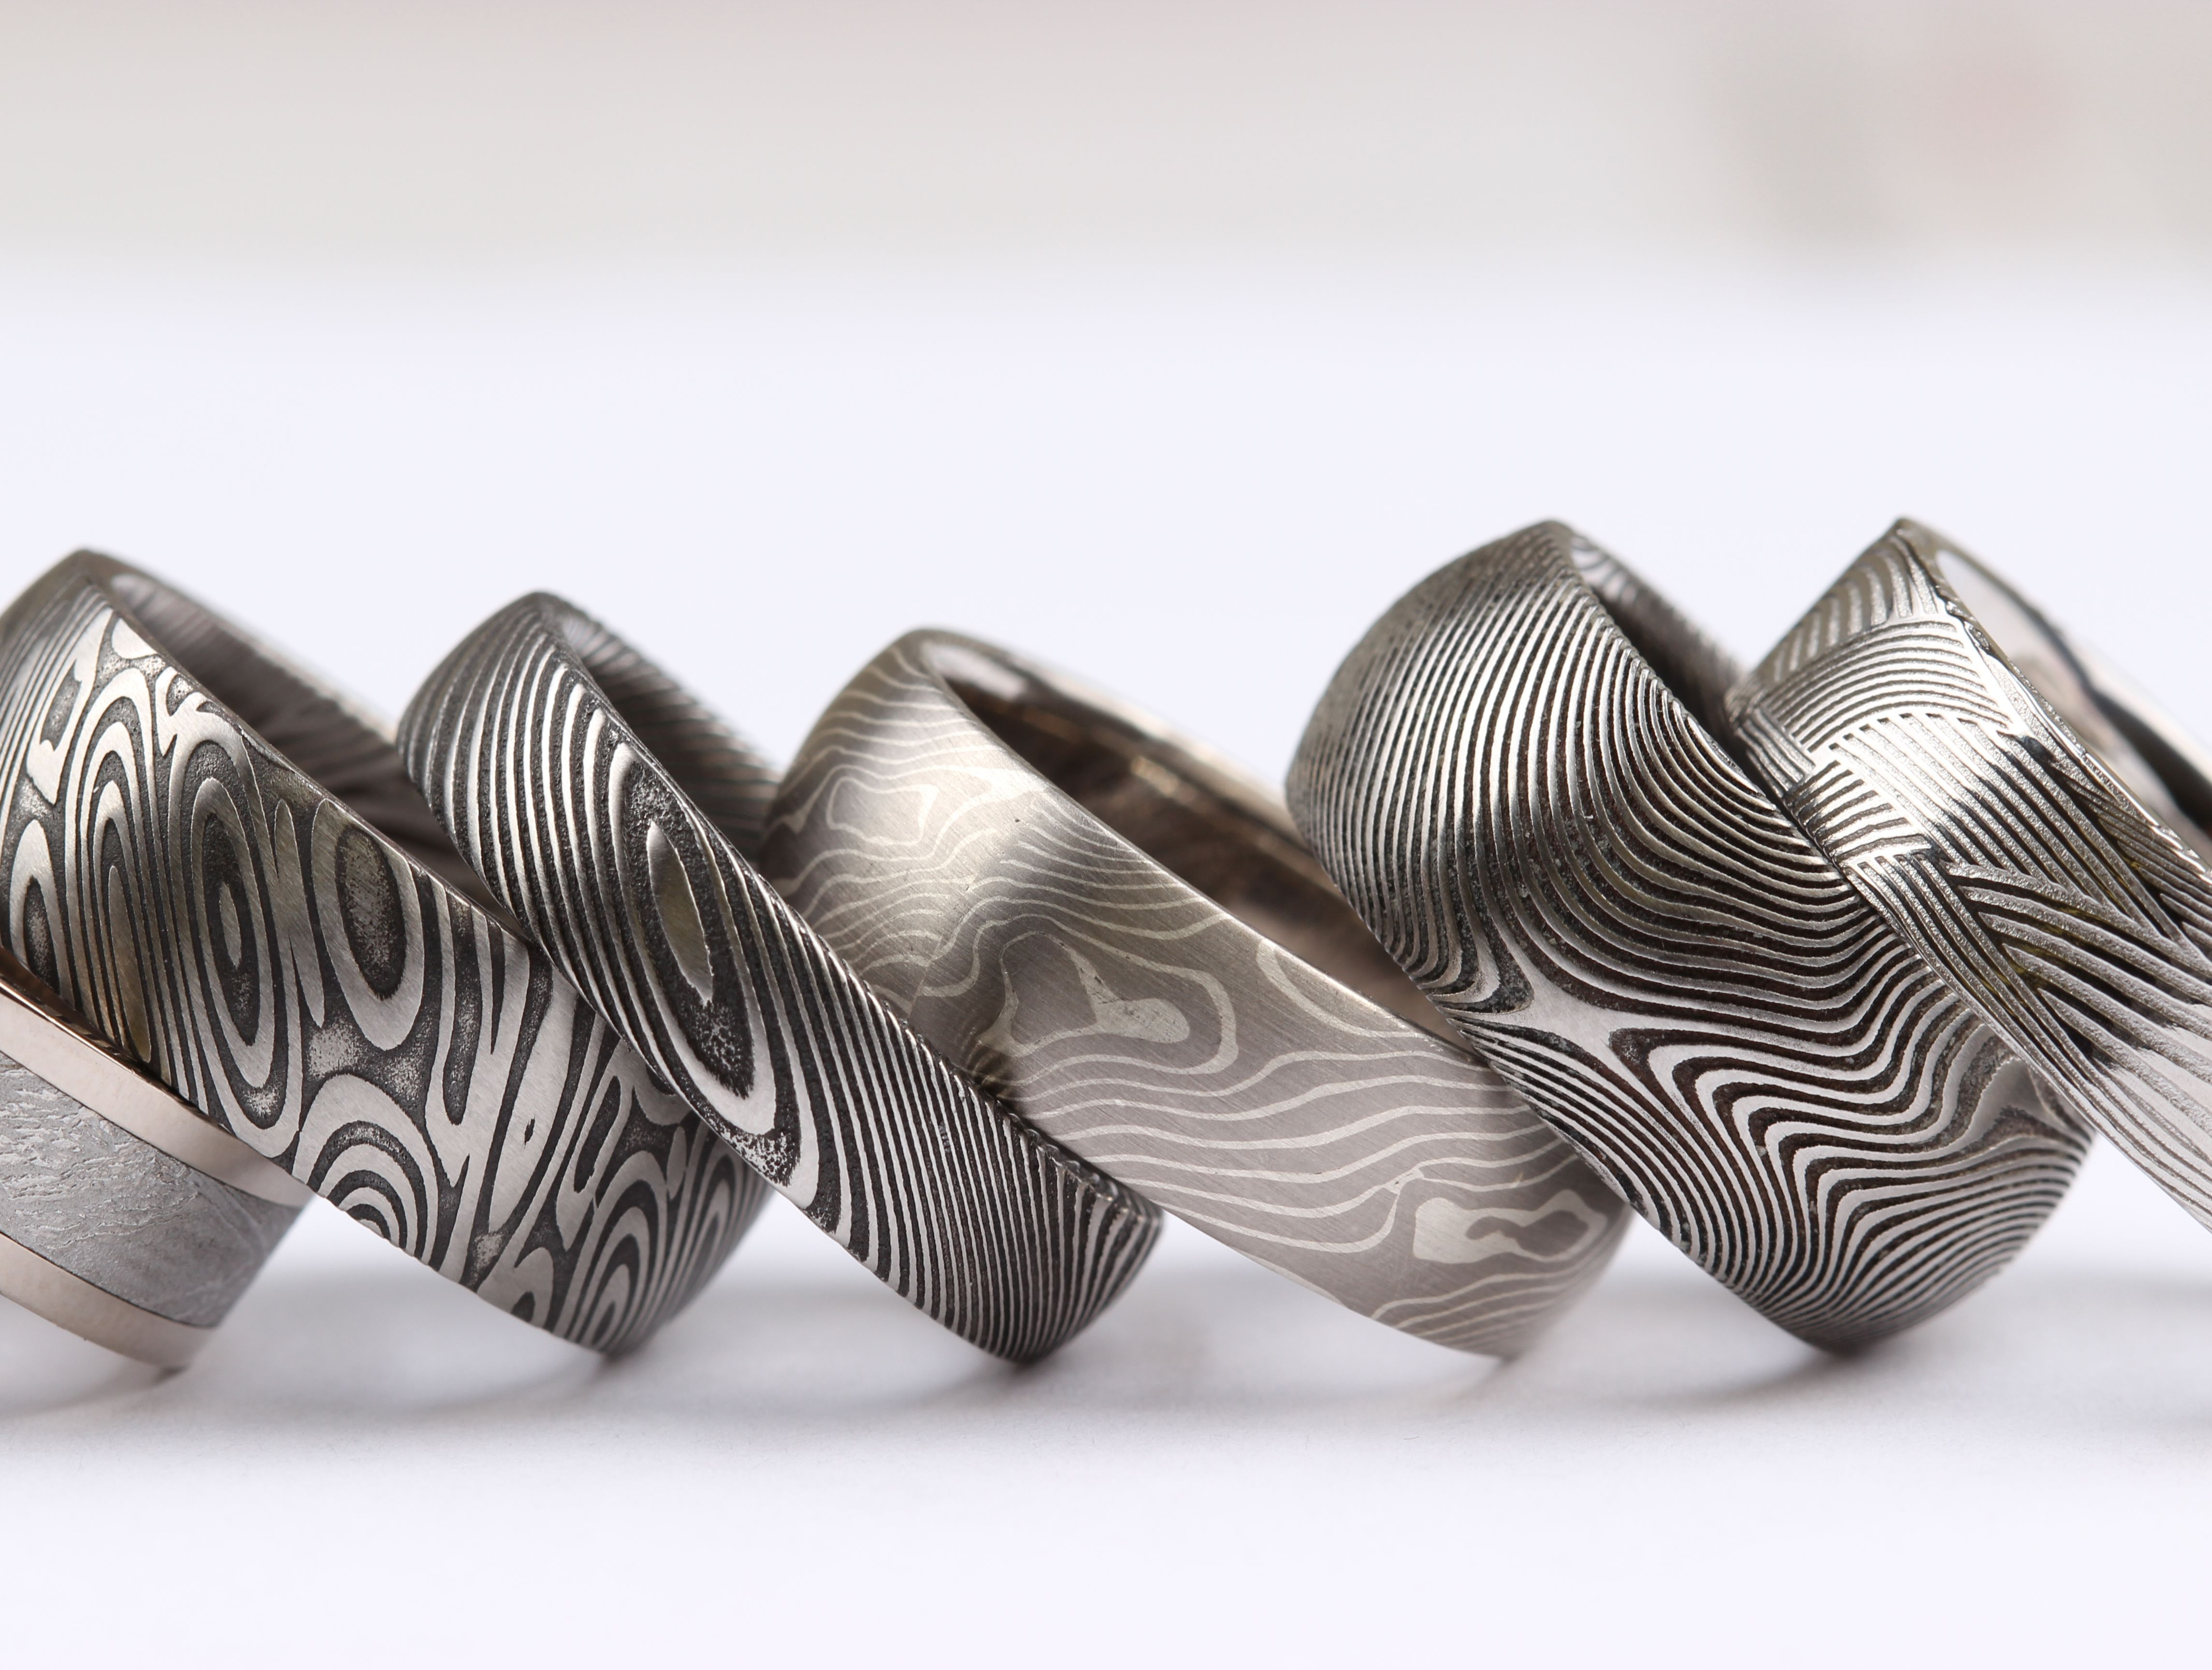 damascus steel, mokume gane and meteorite bands.chris ploof